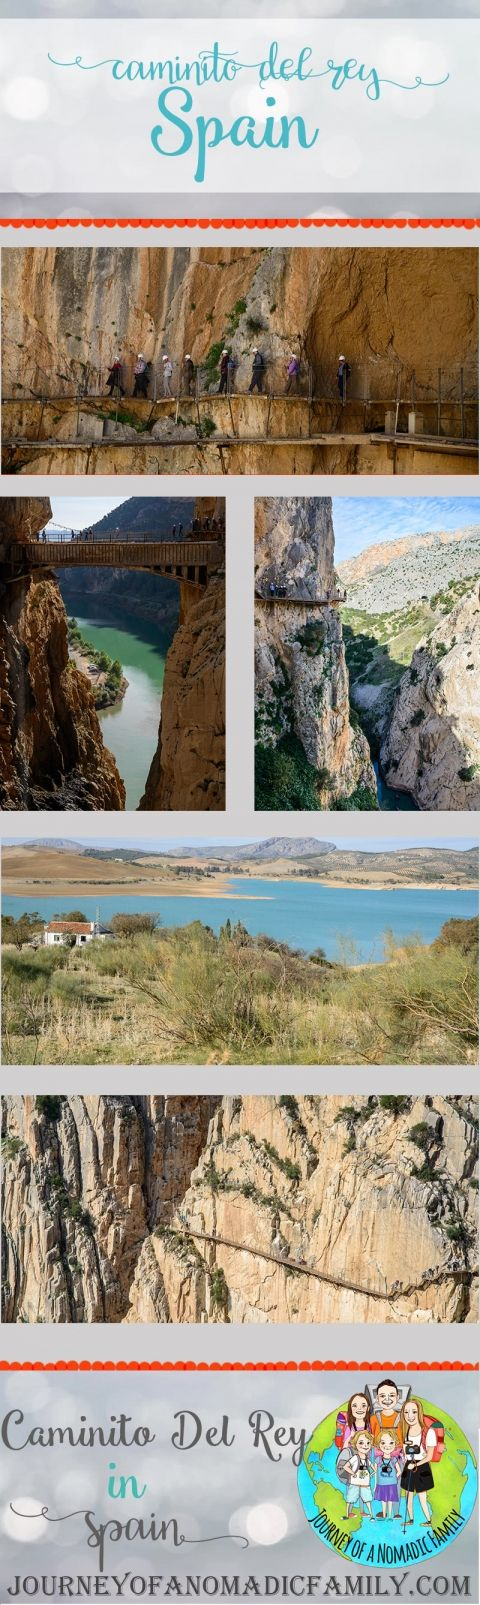 How to hike Caminito Del Rey with kids